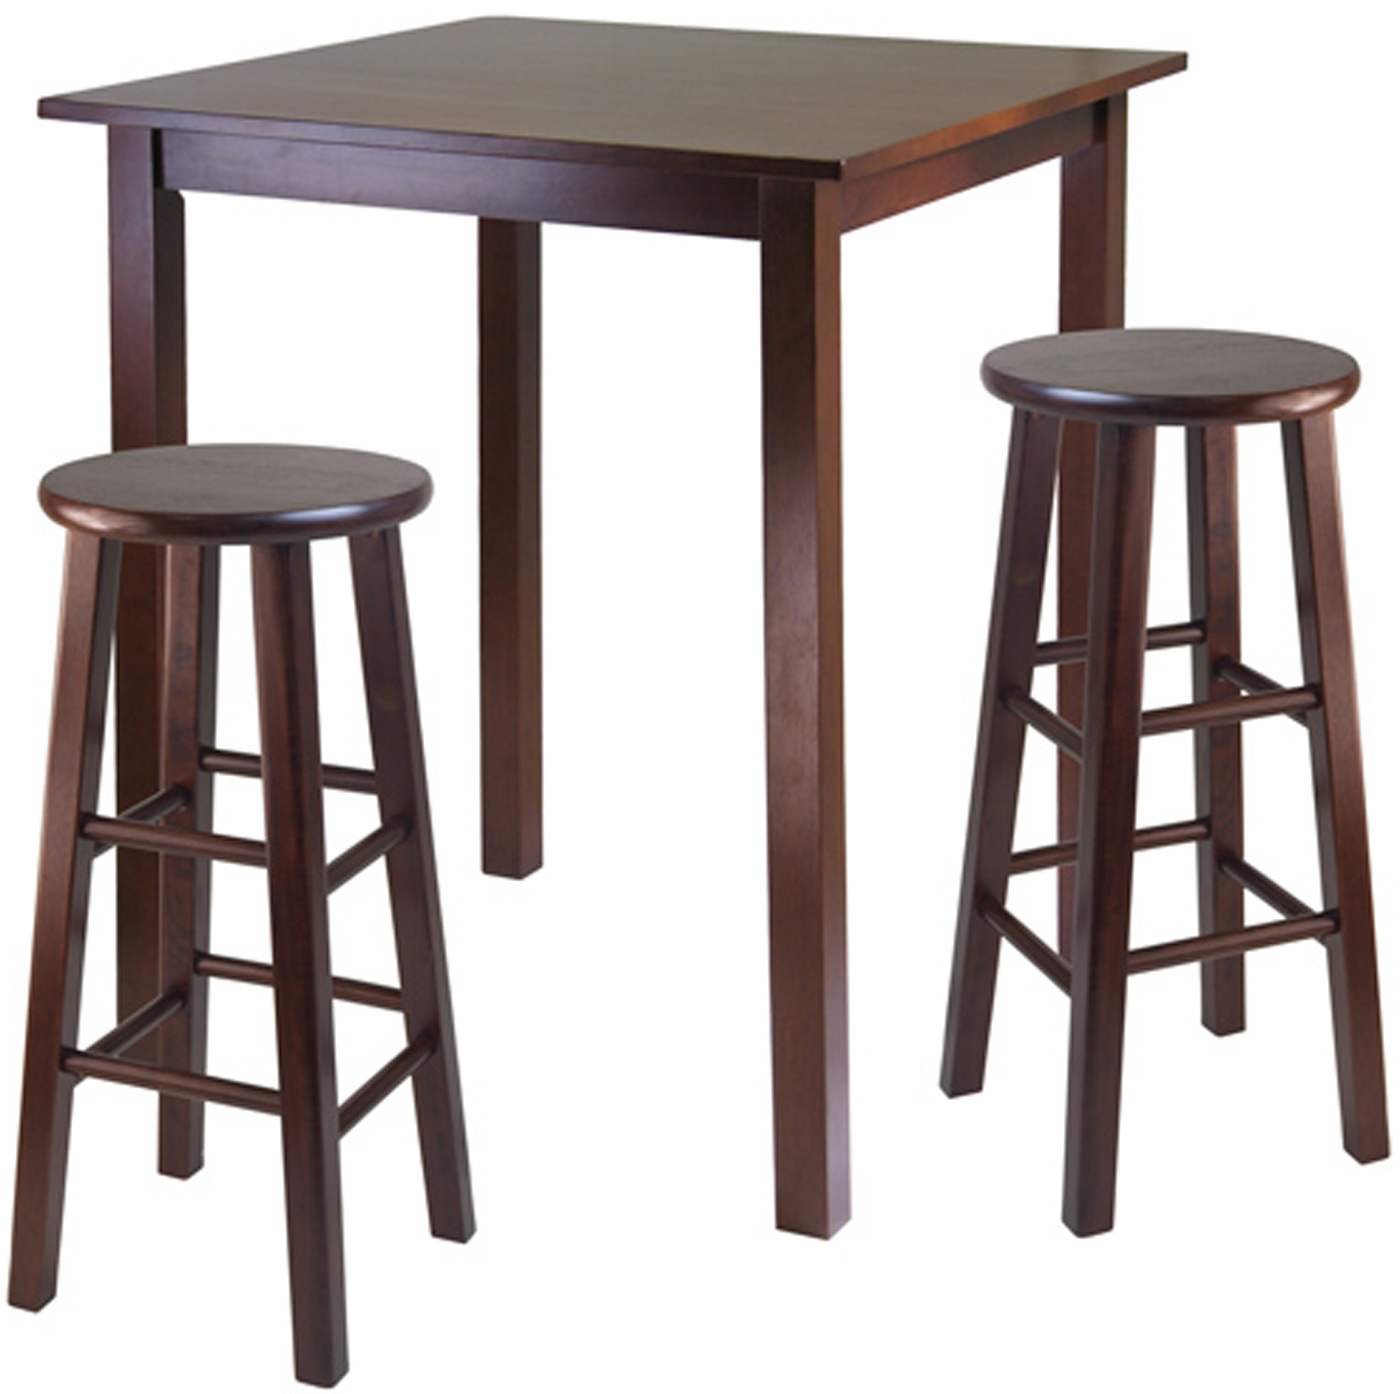 High Table With Stools: Parkland High Table With Two Swivel Stools